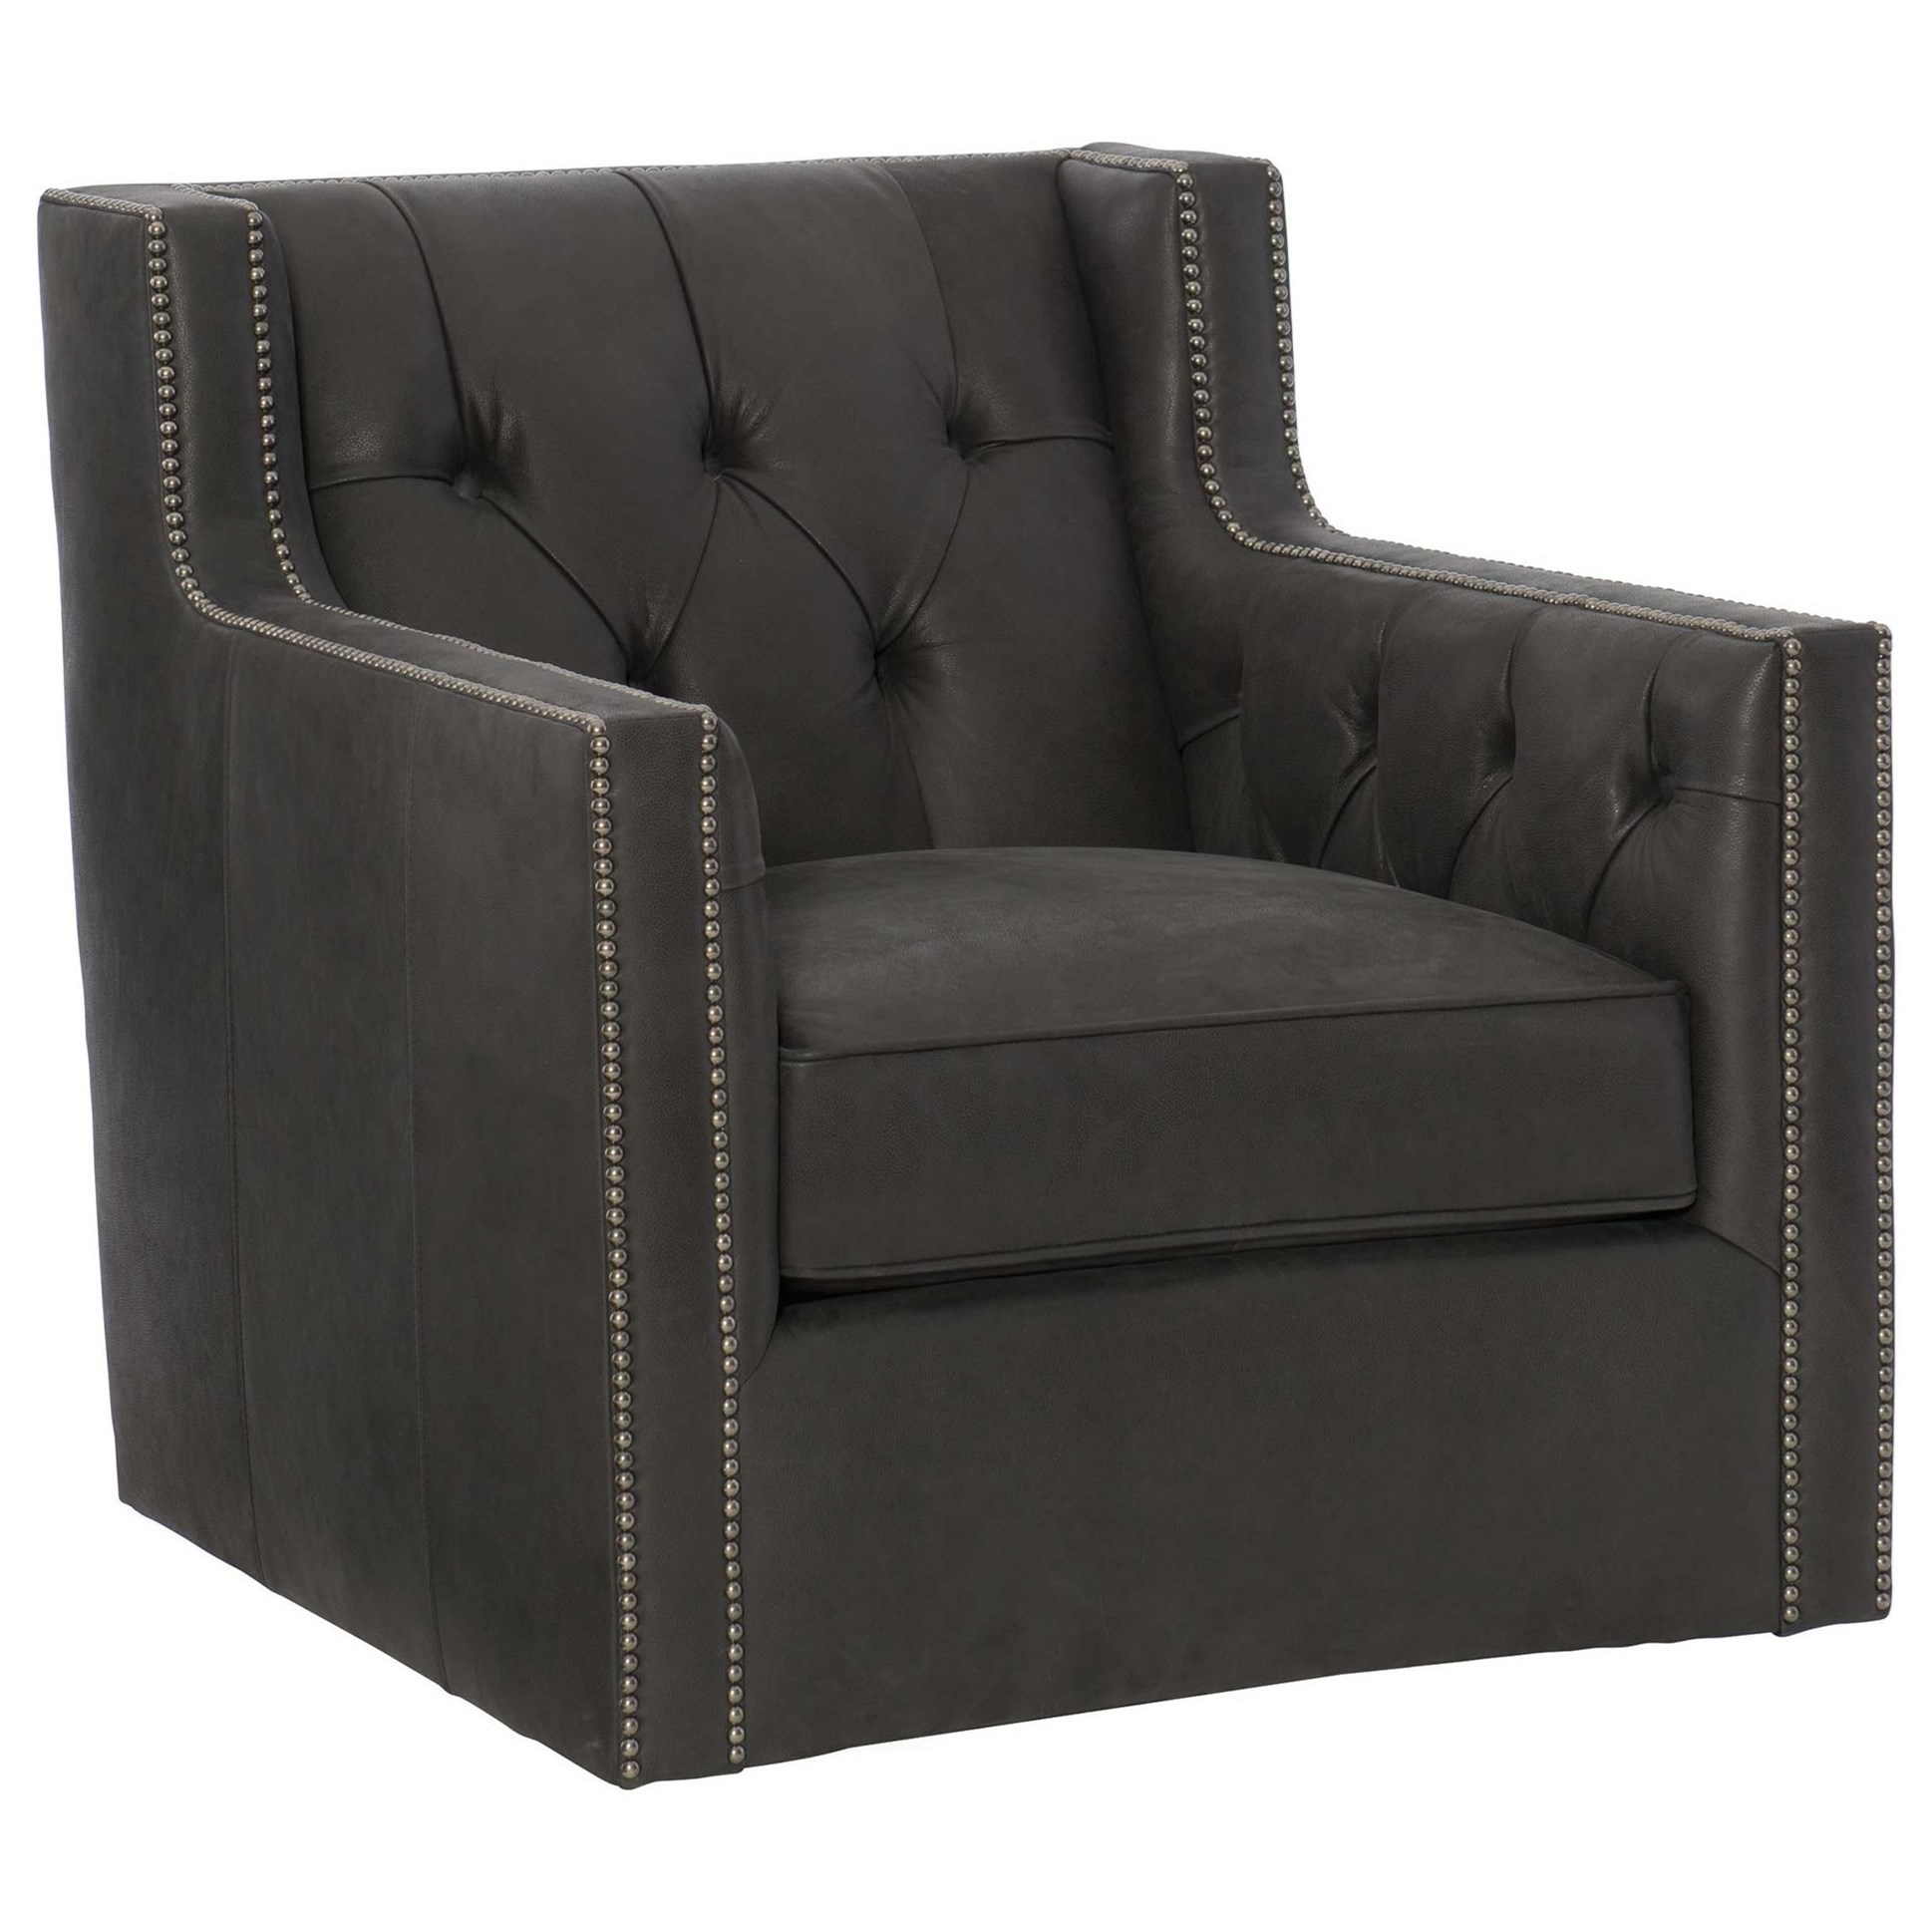 Bernhardt Candace Footless Chair With Nailhead Trim